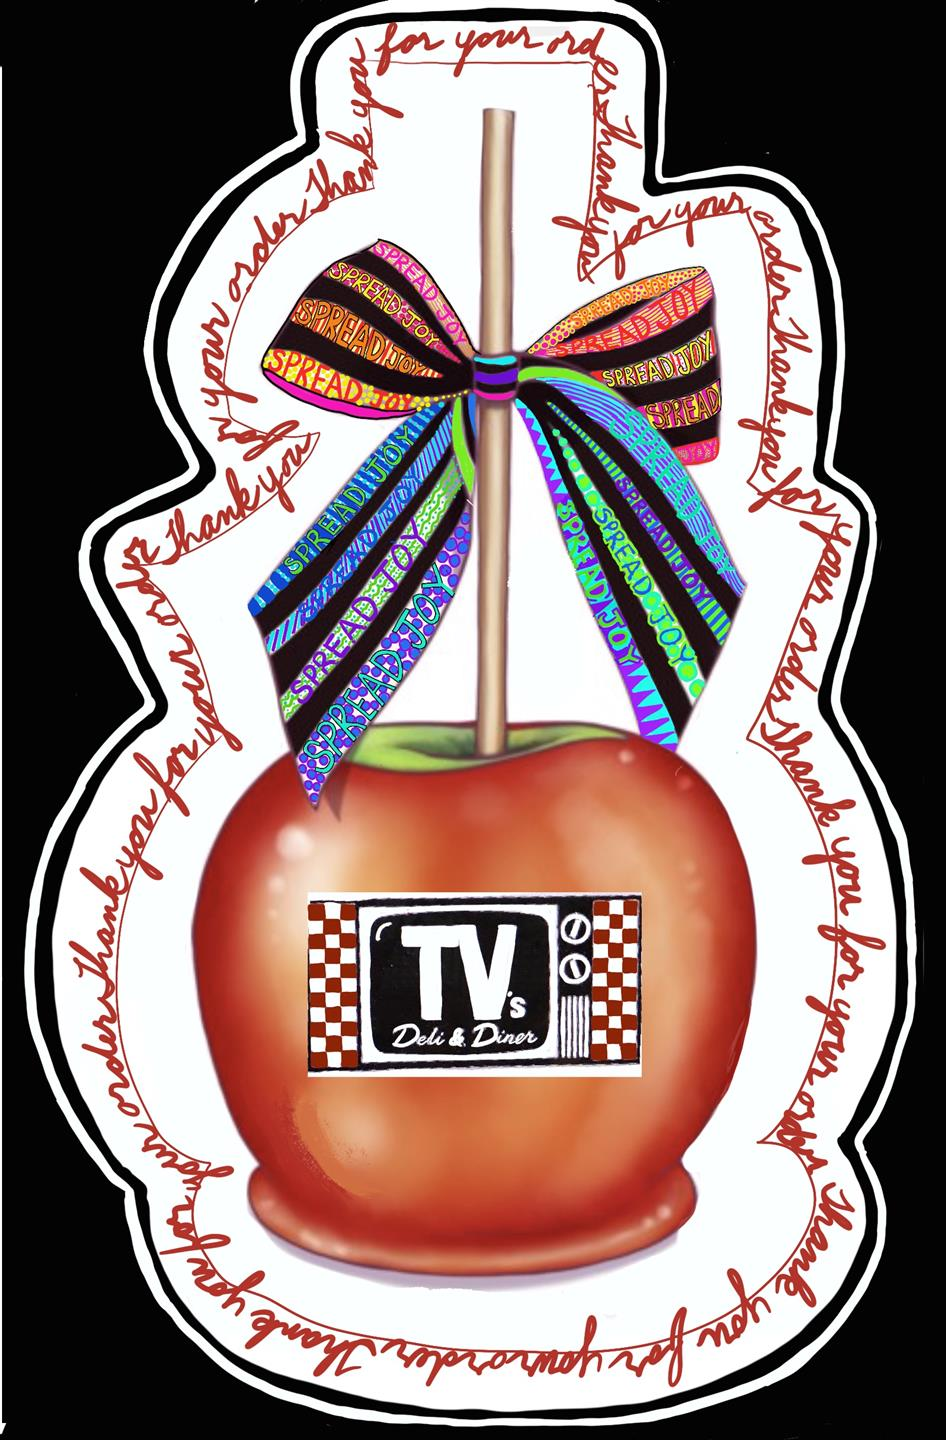 a caramel apple with tv stamped on it